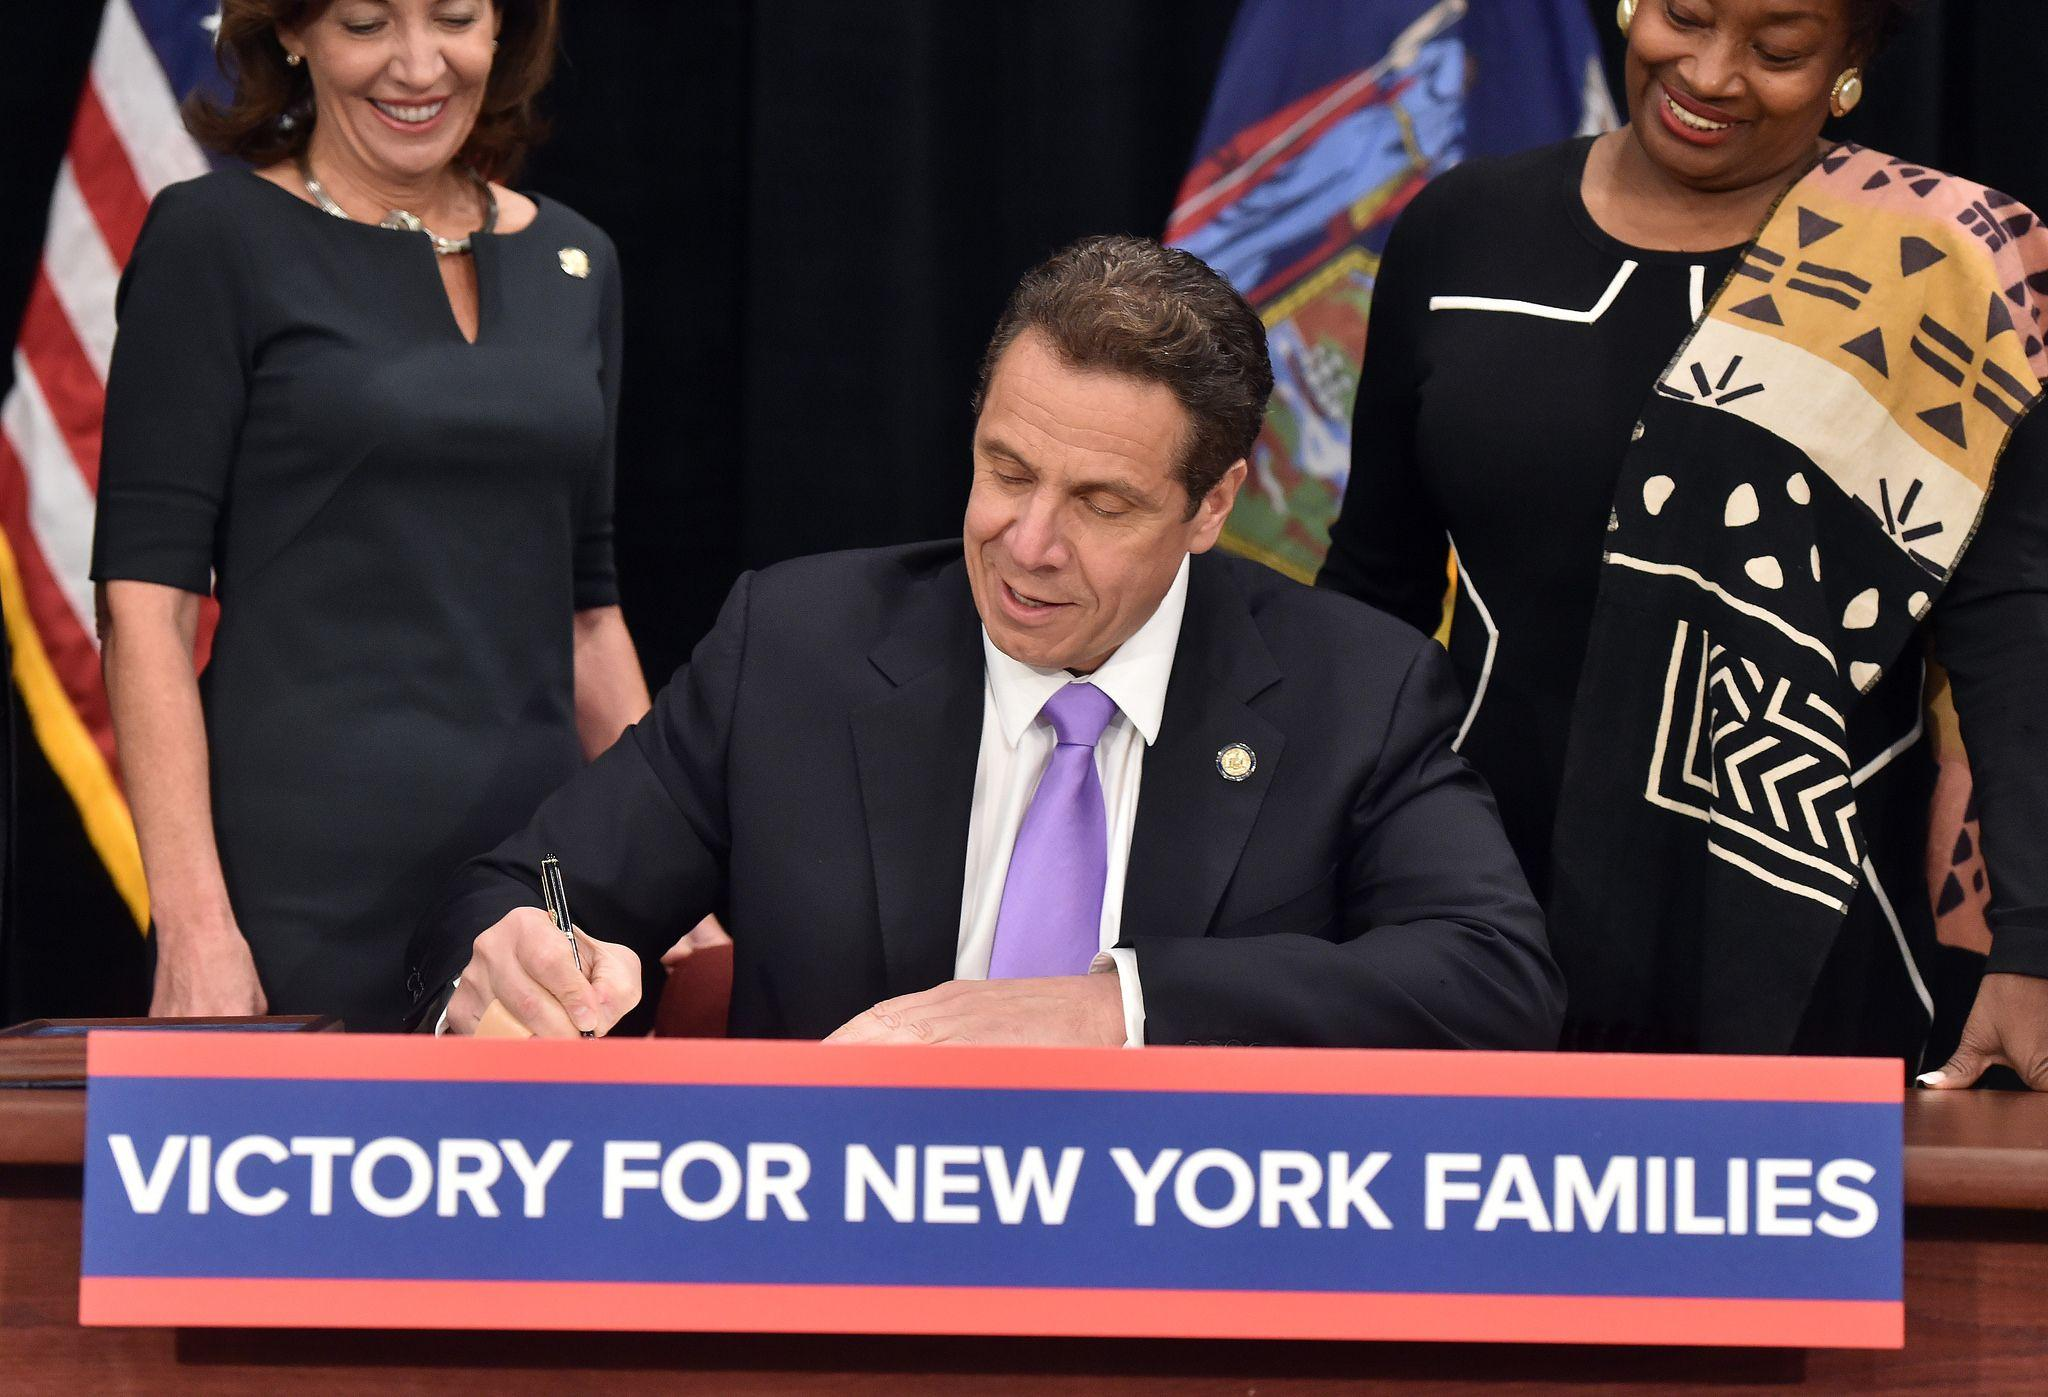 Paid family leave officially starts in New York State